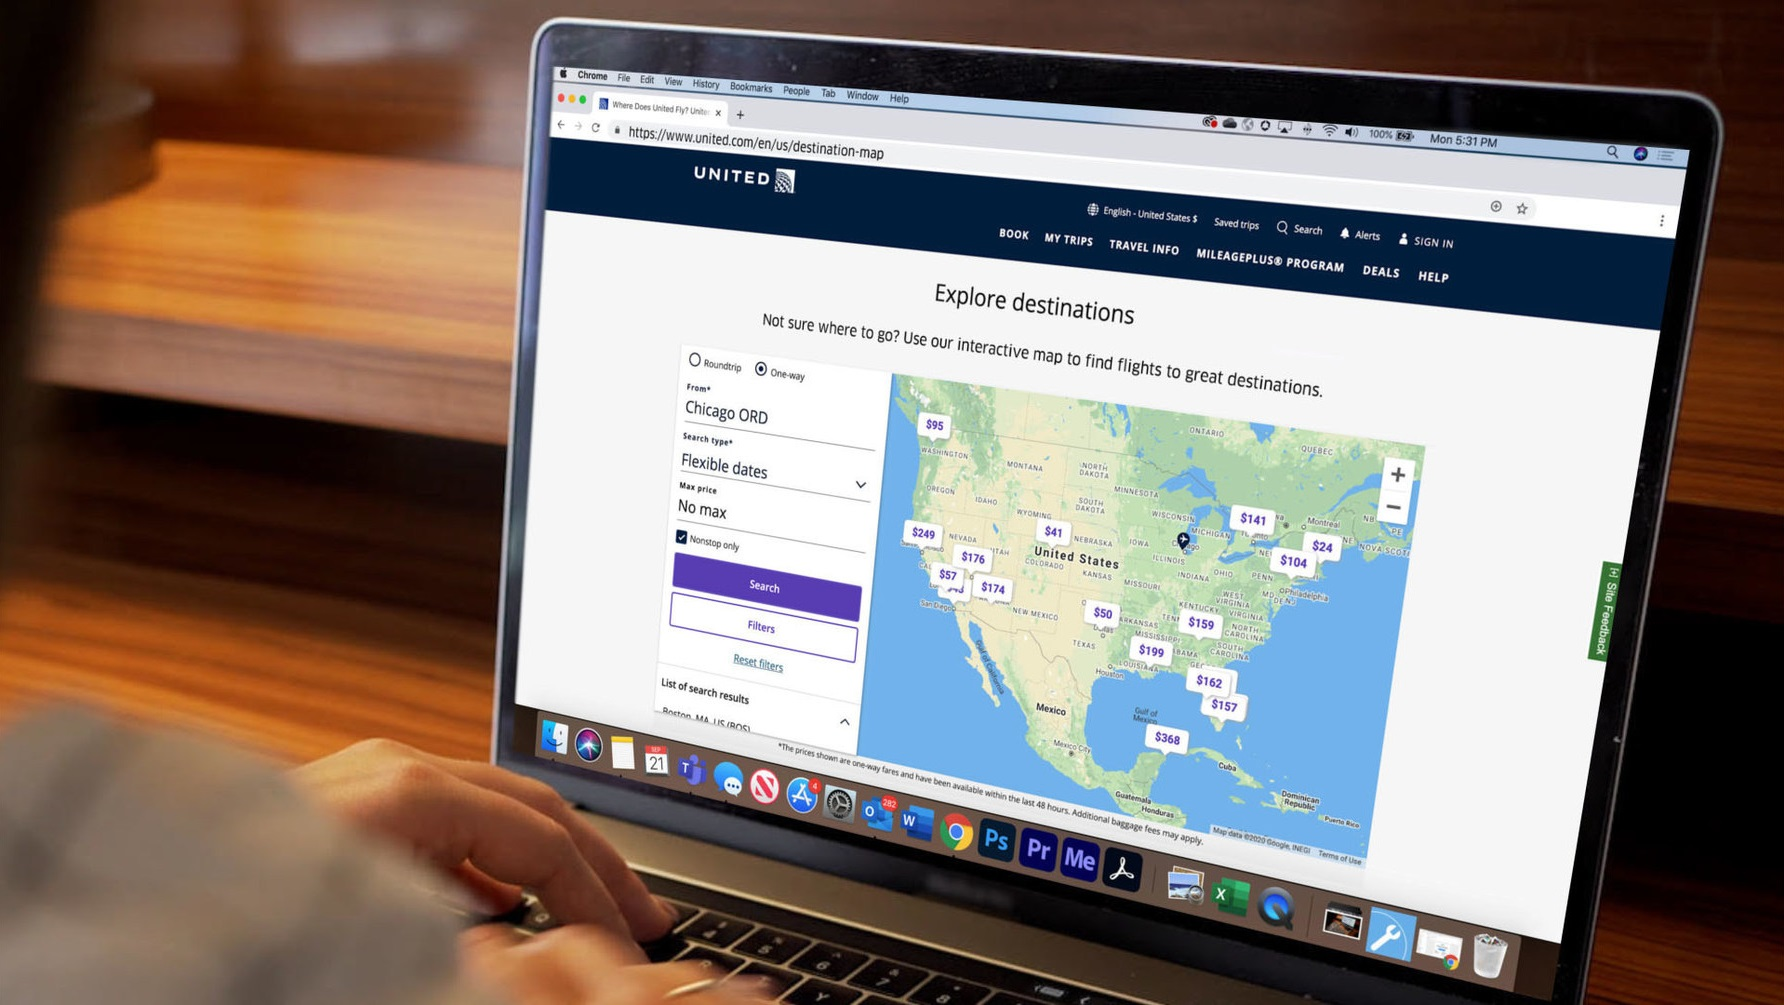 United first US airline to launch online 'Map Search' feature